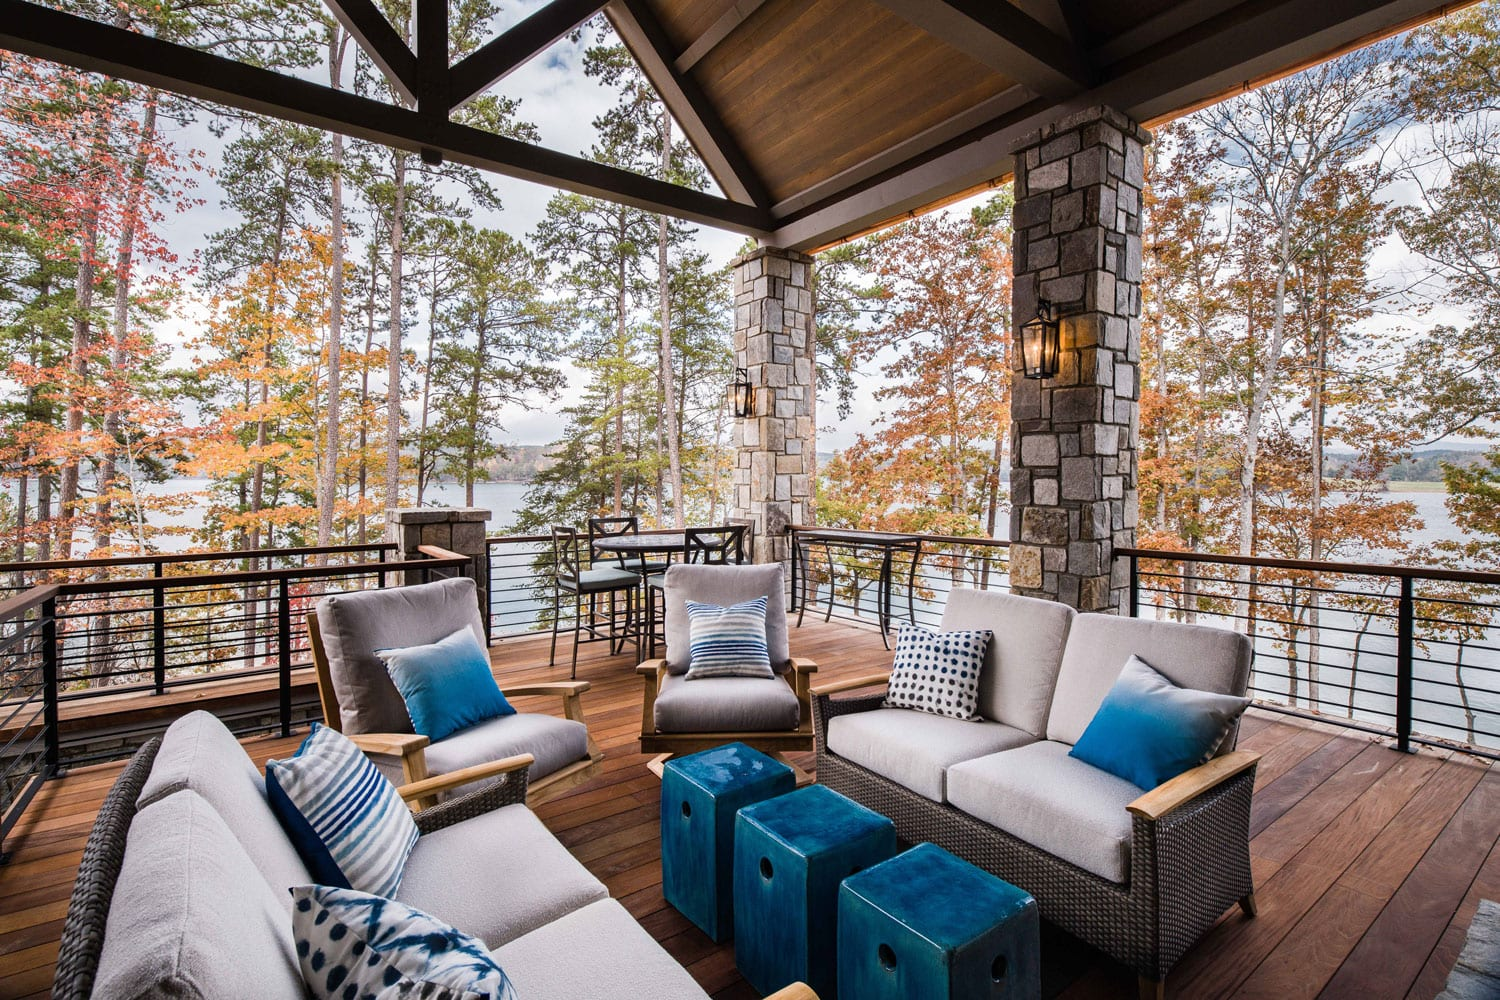 Outdoor Living - The Mullen Residence in the Cliffs at Keowee Springs